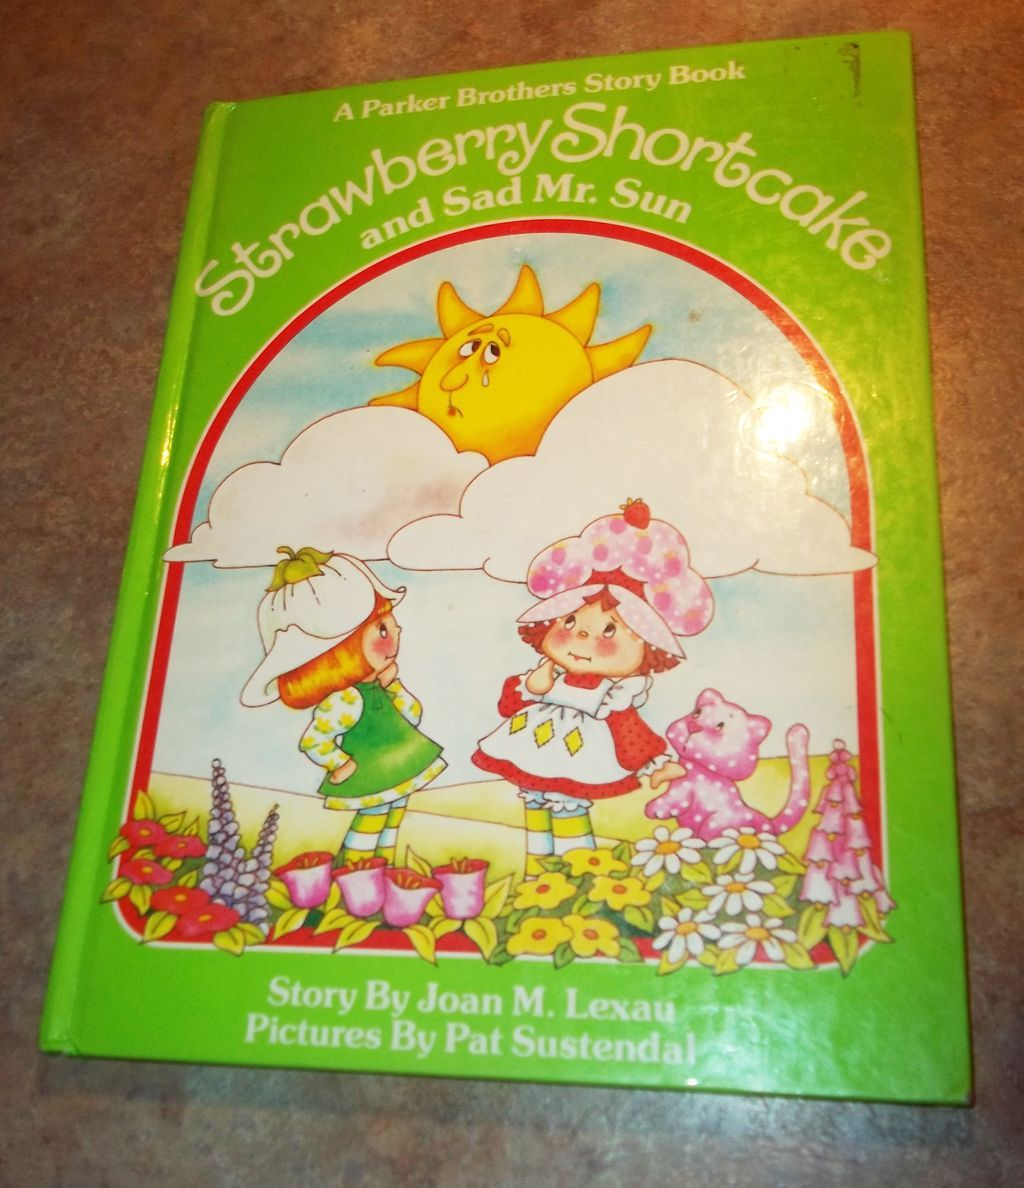 Strawberry Shortcake and Sad Mister Sun Children's H.C. Book